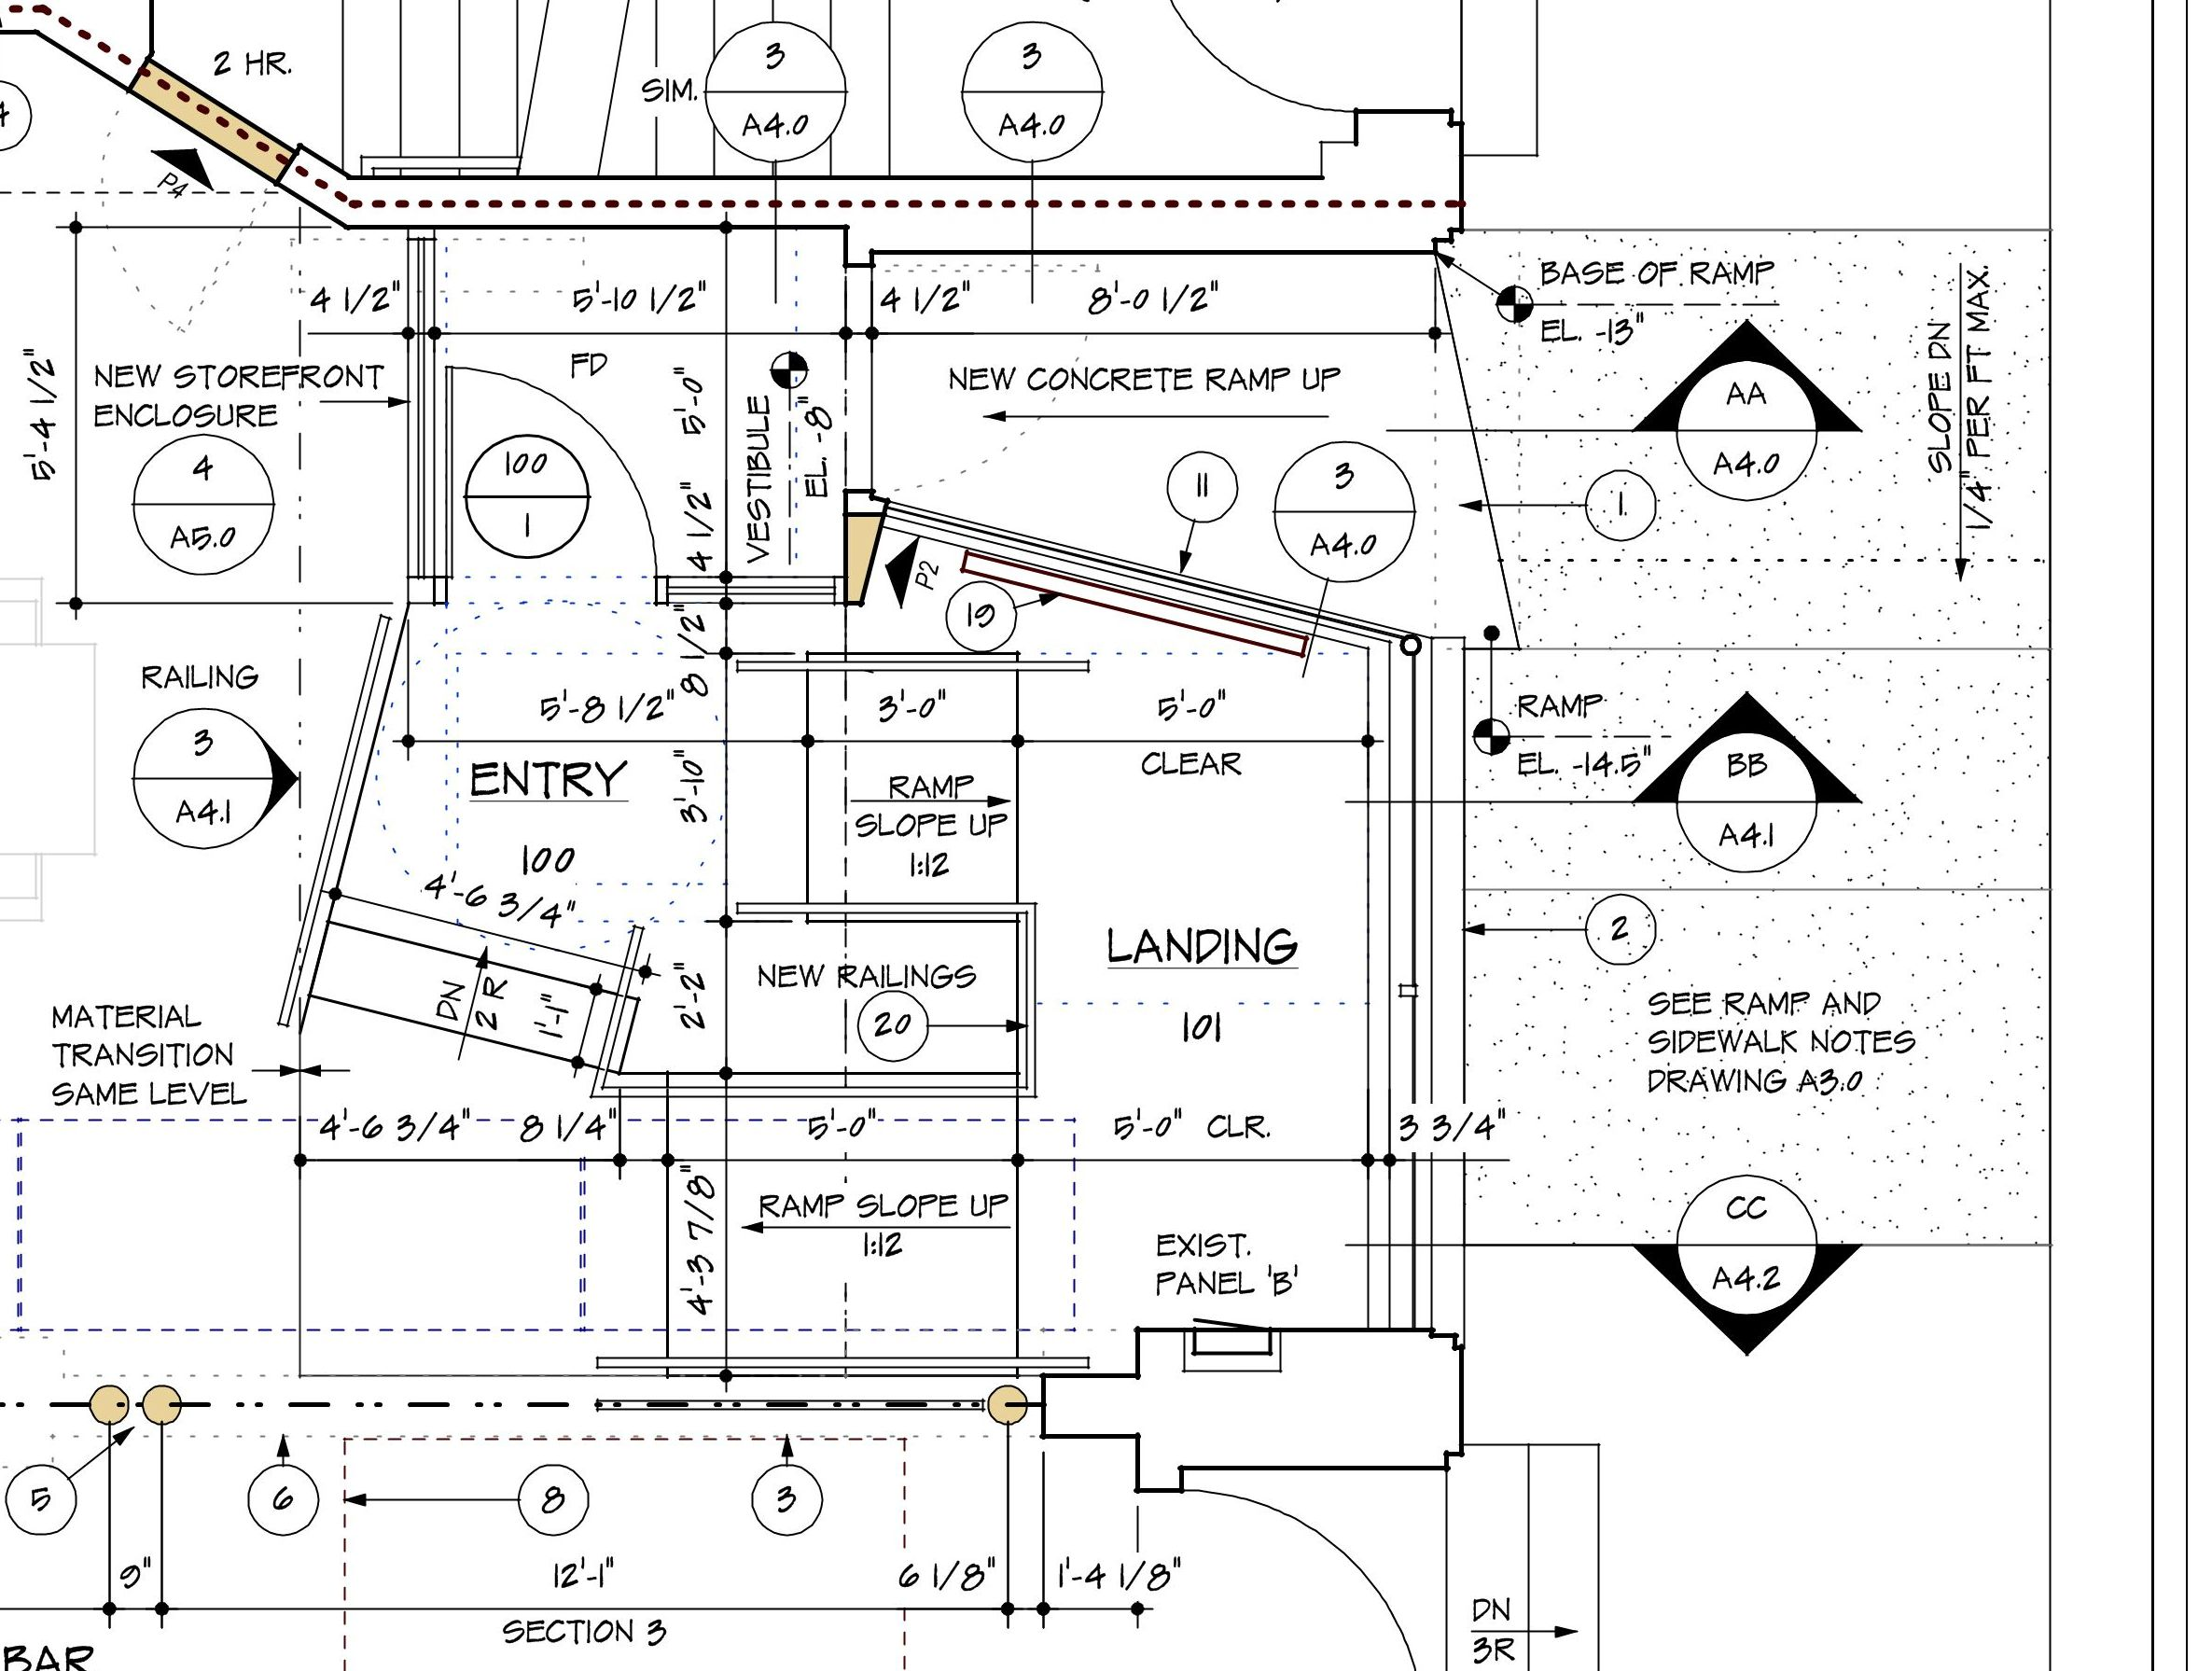 Building Detail Drawing at GetDrawings com | Free for personal use